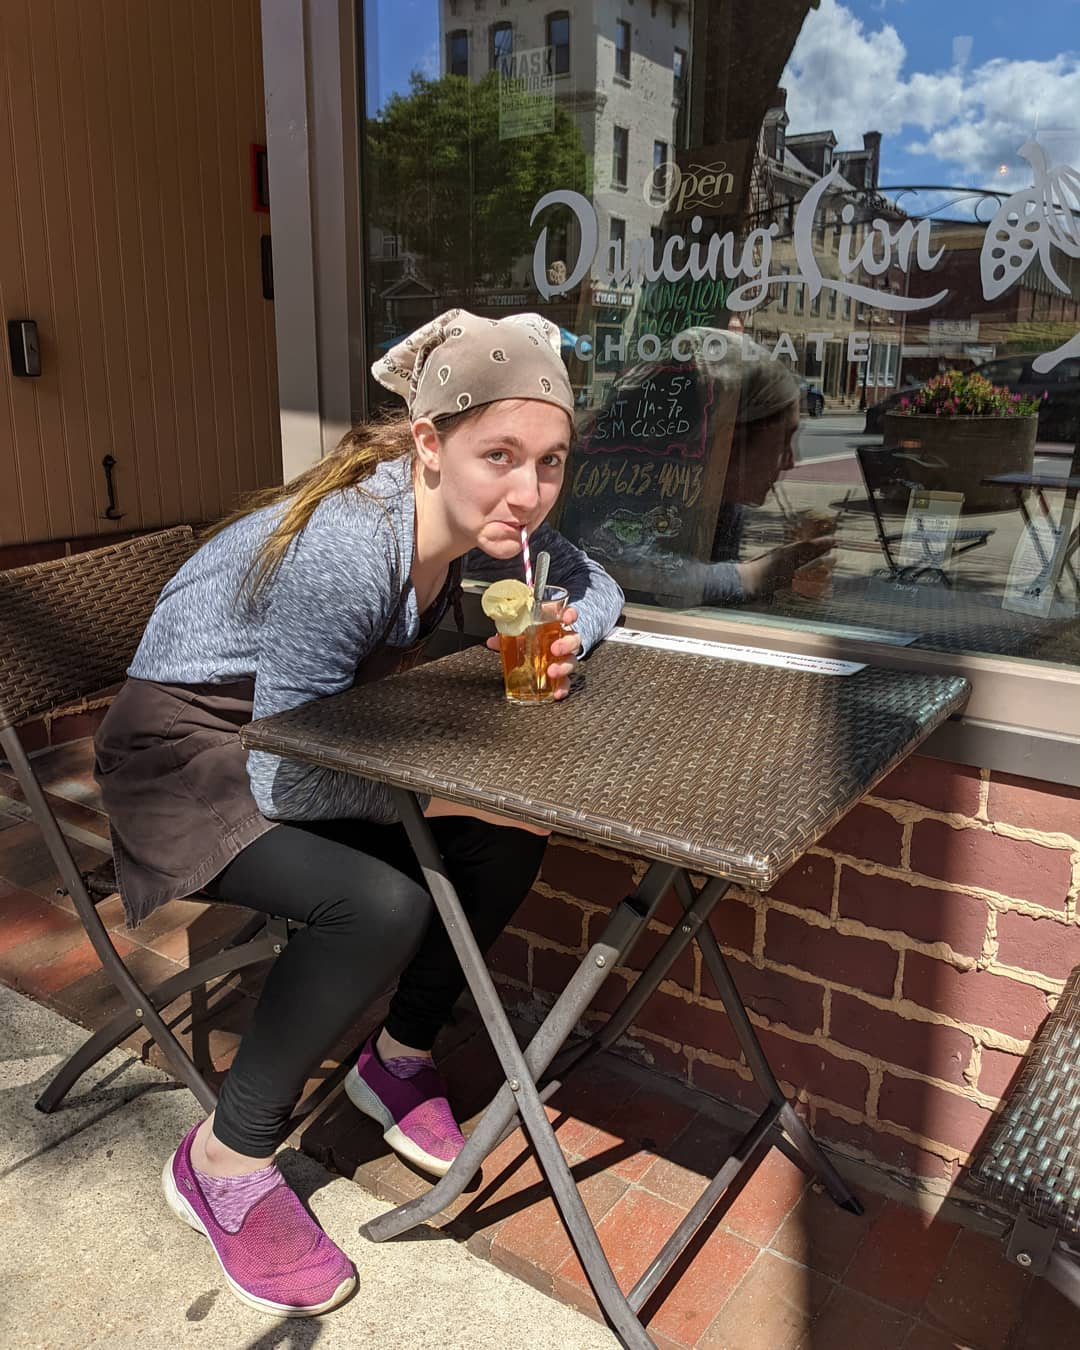 'That's quite the good combo!' Anabel remarks about our maple ice cream floats. #chocolatier #local #icecream #summer #icecreamparlor We make the ice cream from scratch, sourced from local ingredients and our sodas are made fresh in house.